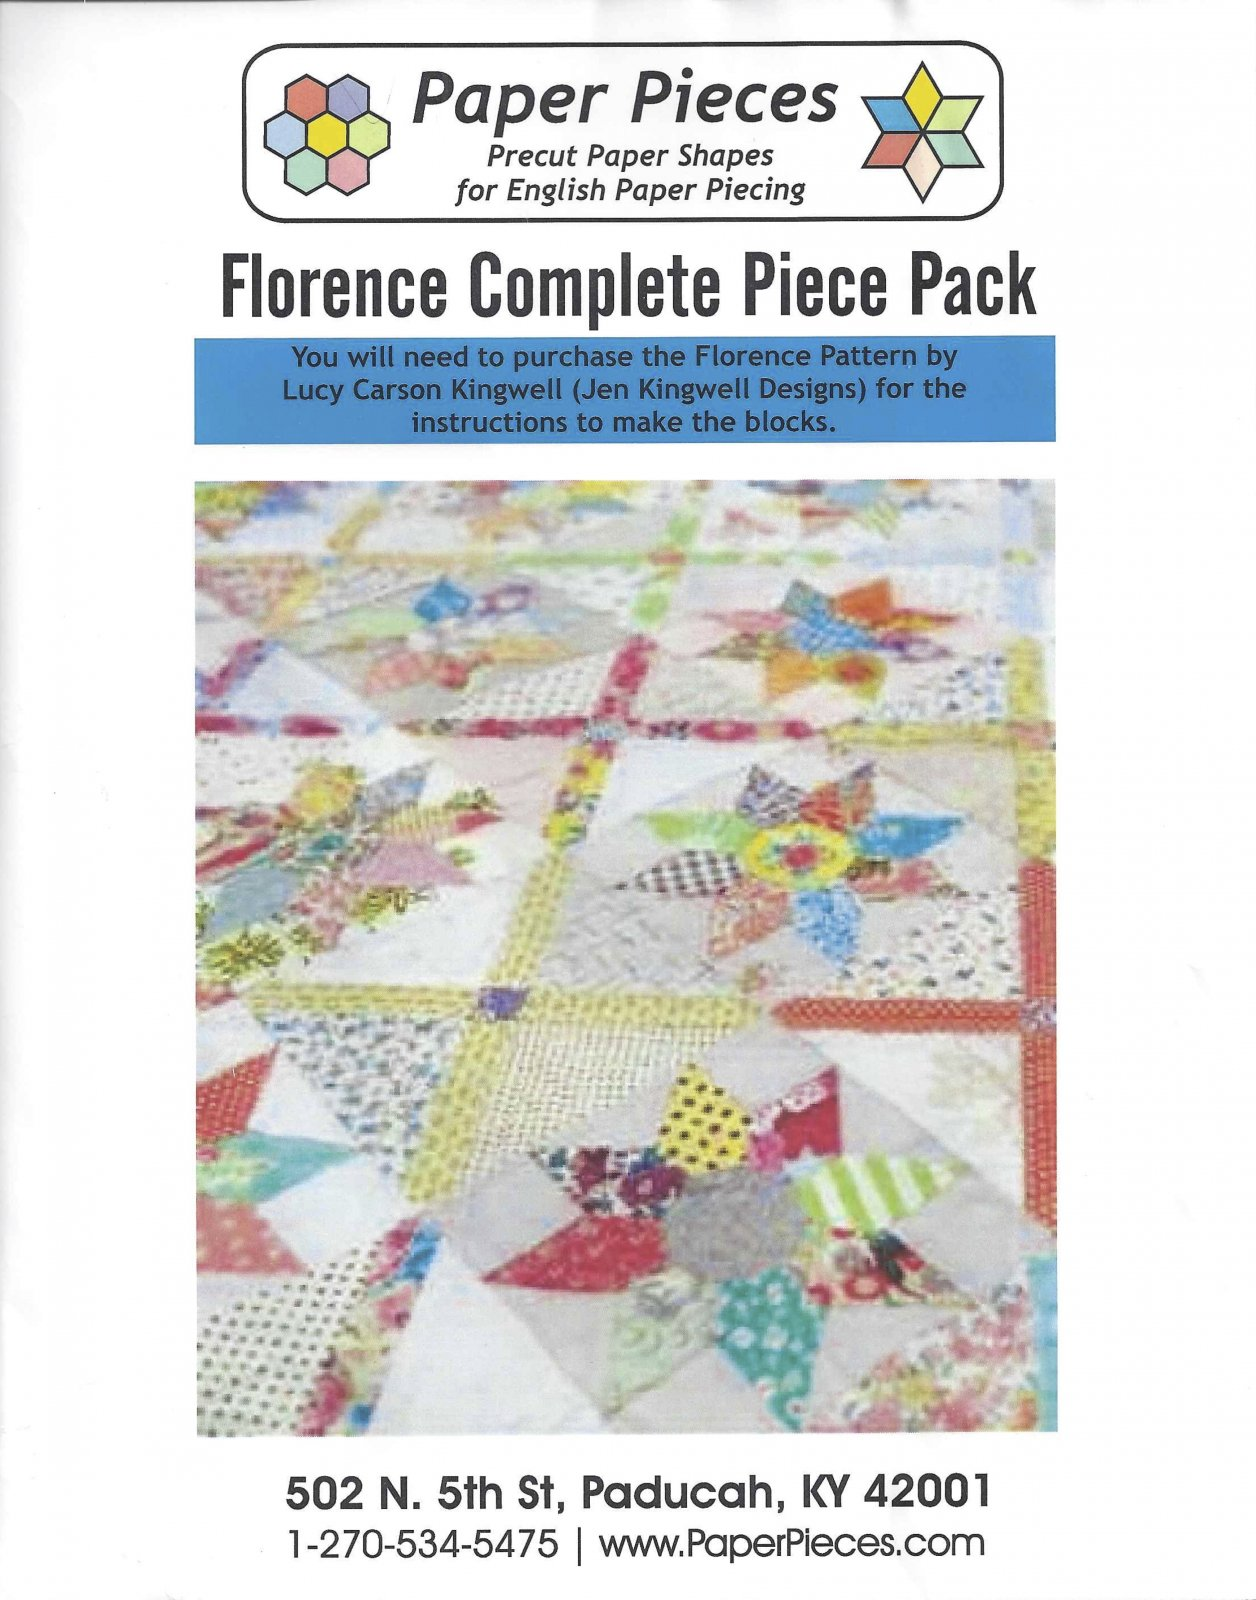 Florence By Lucy Carson Kingwell - Paper Pieces - Complete Piece Pack - Includes Pattern